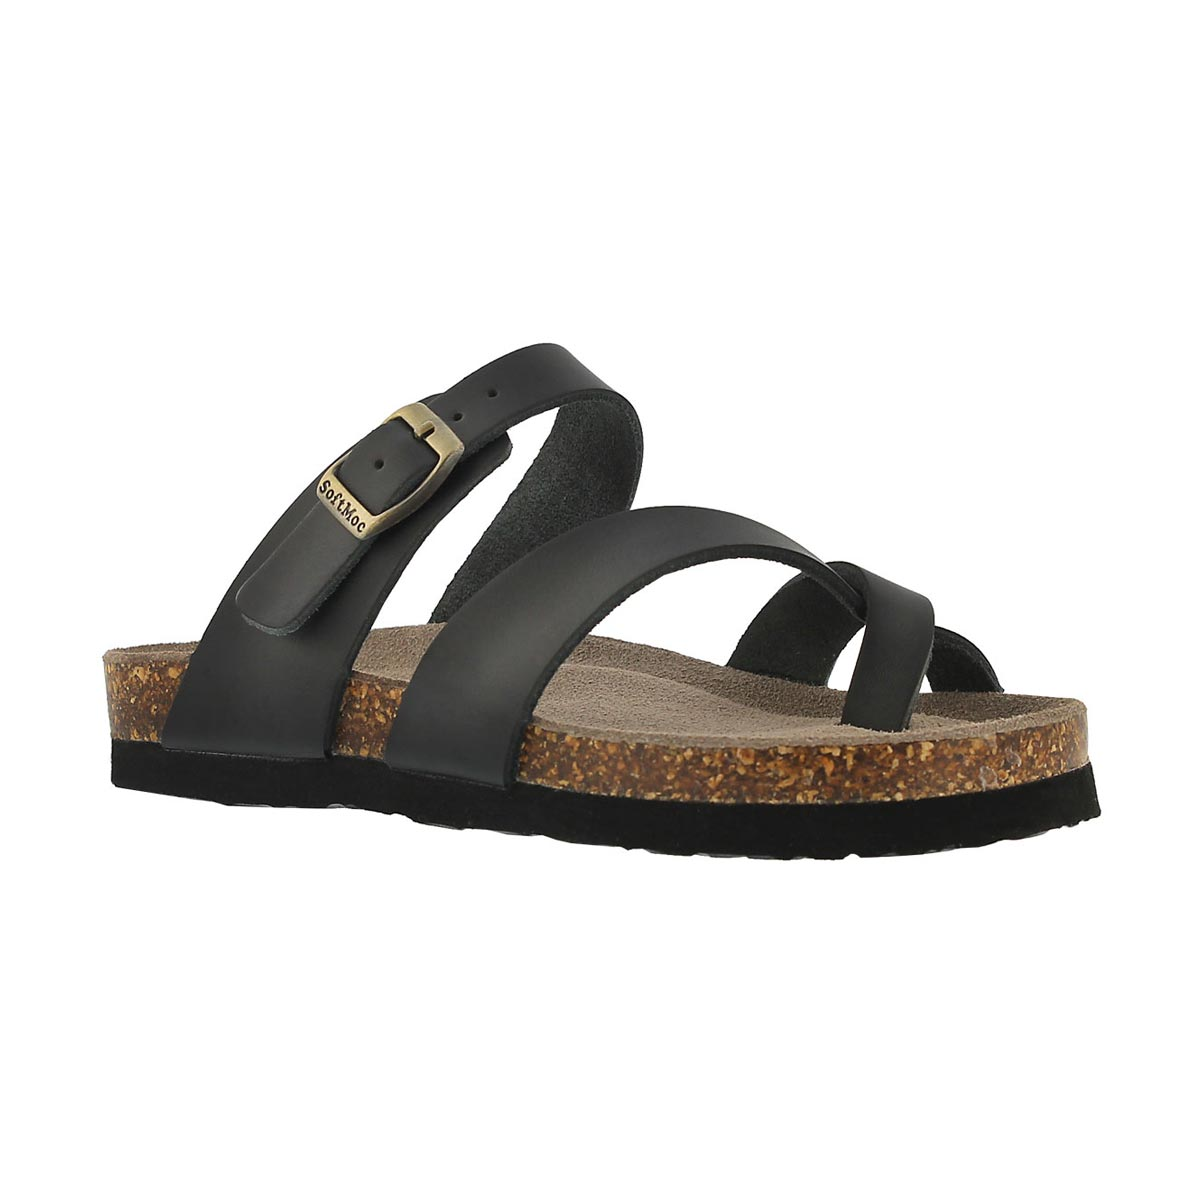 Girls' ALICIA black leather toe loop sandals